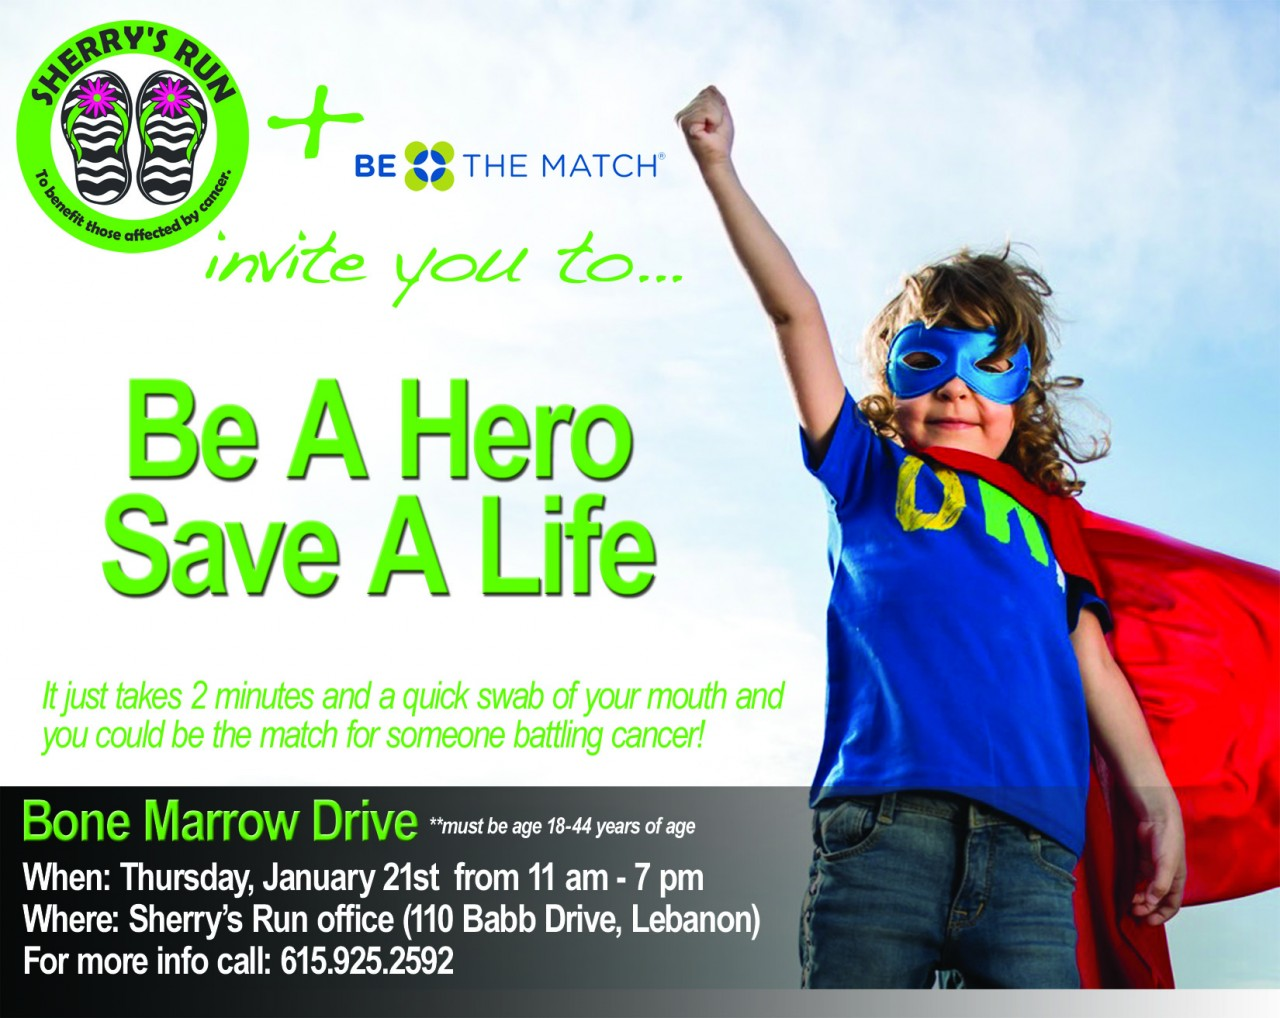 Be A Hero. Save A Life.